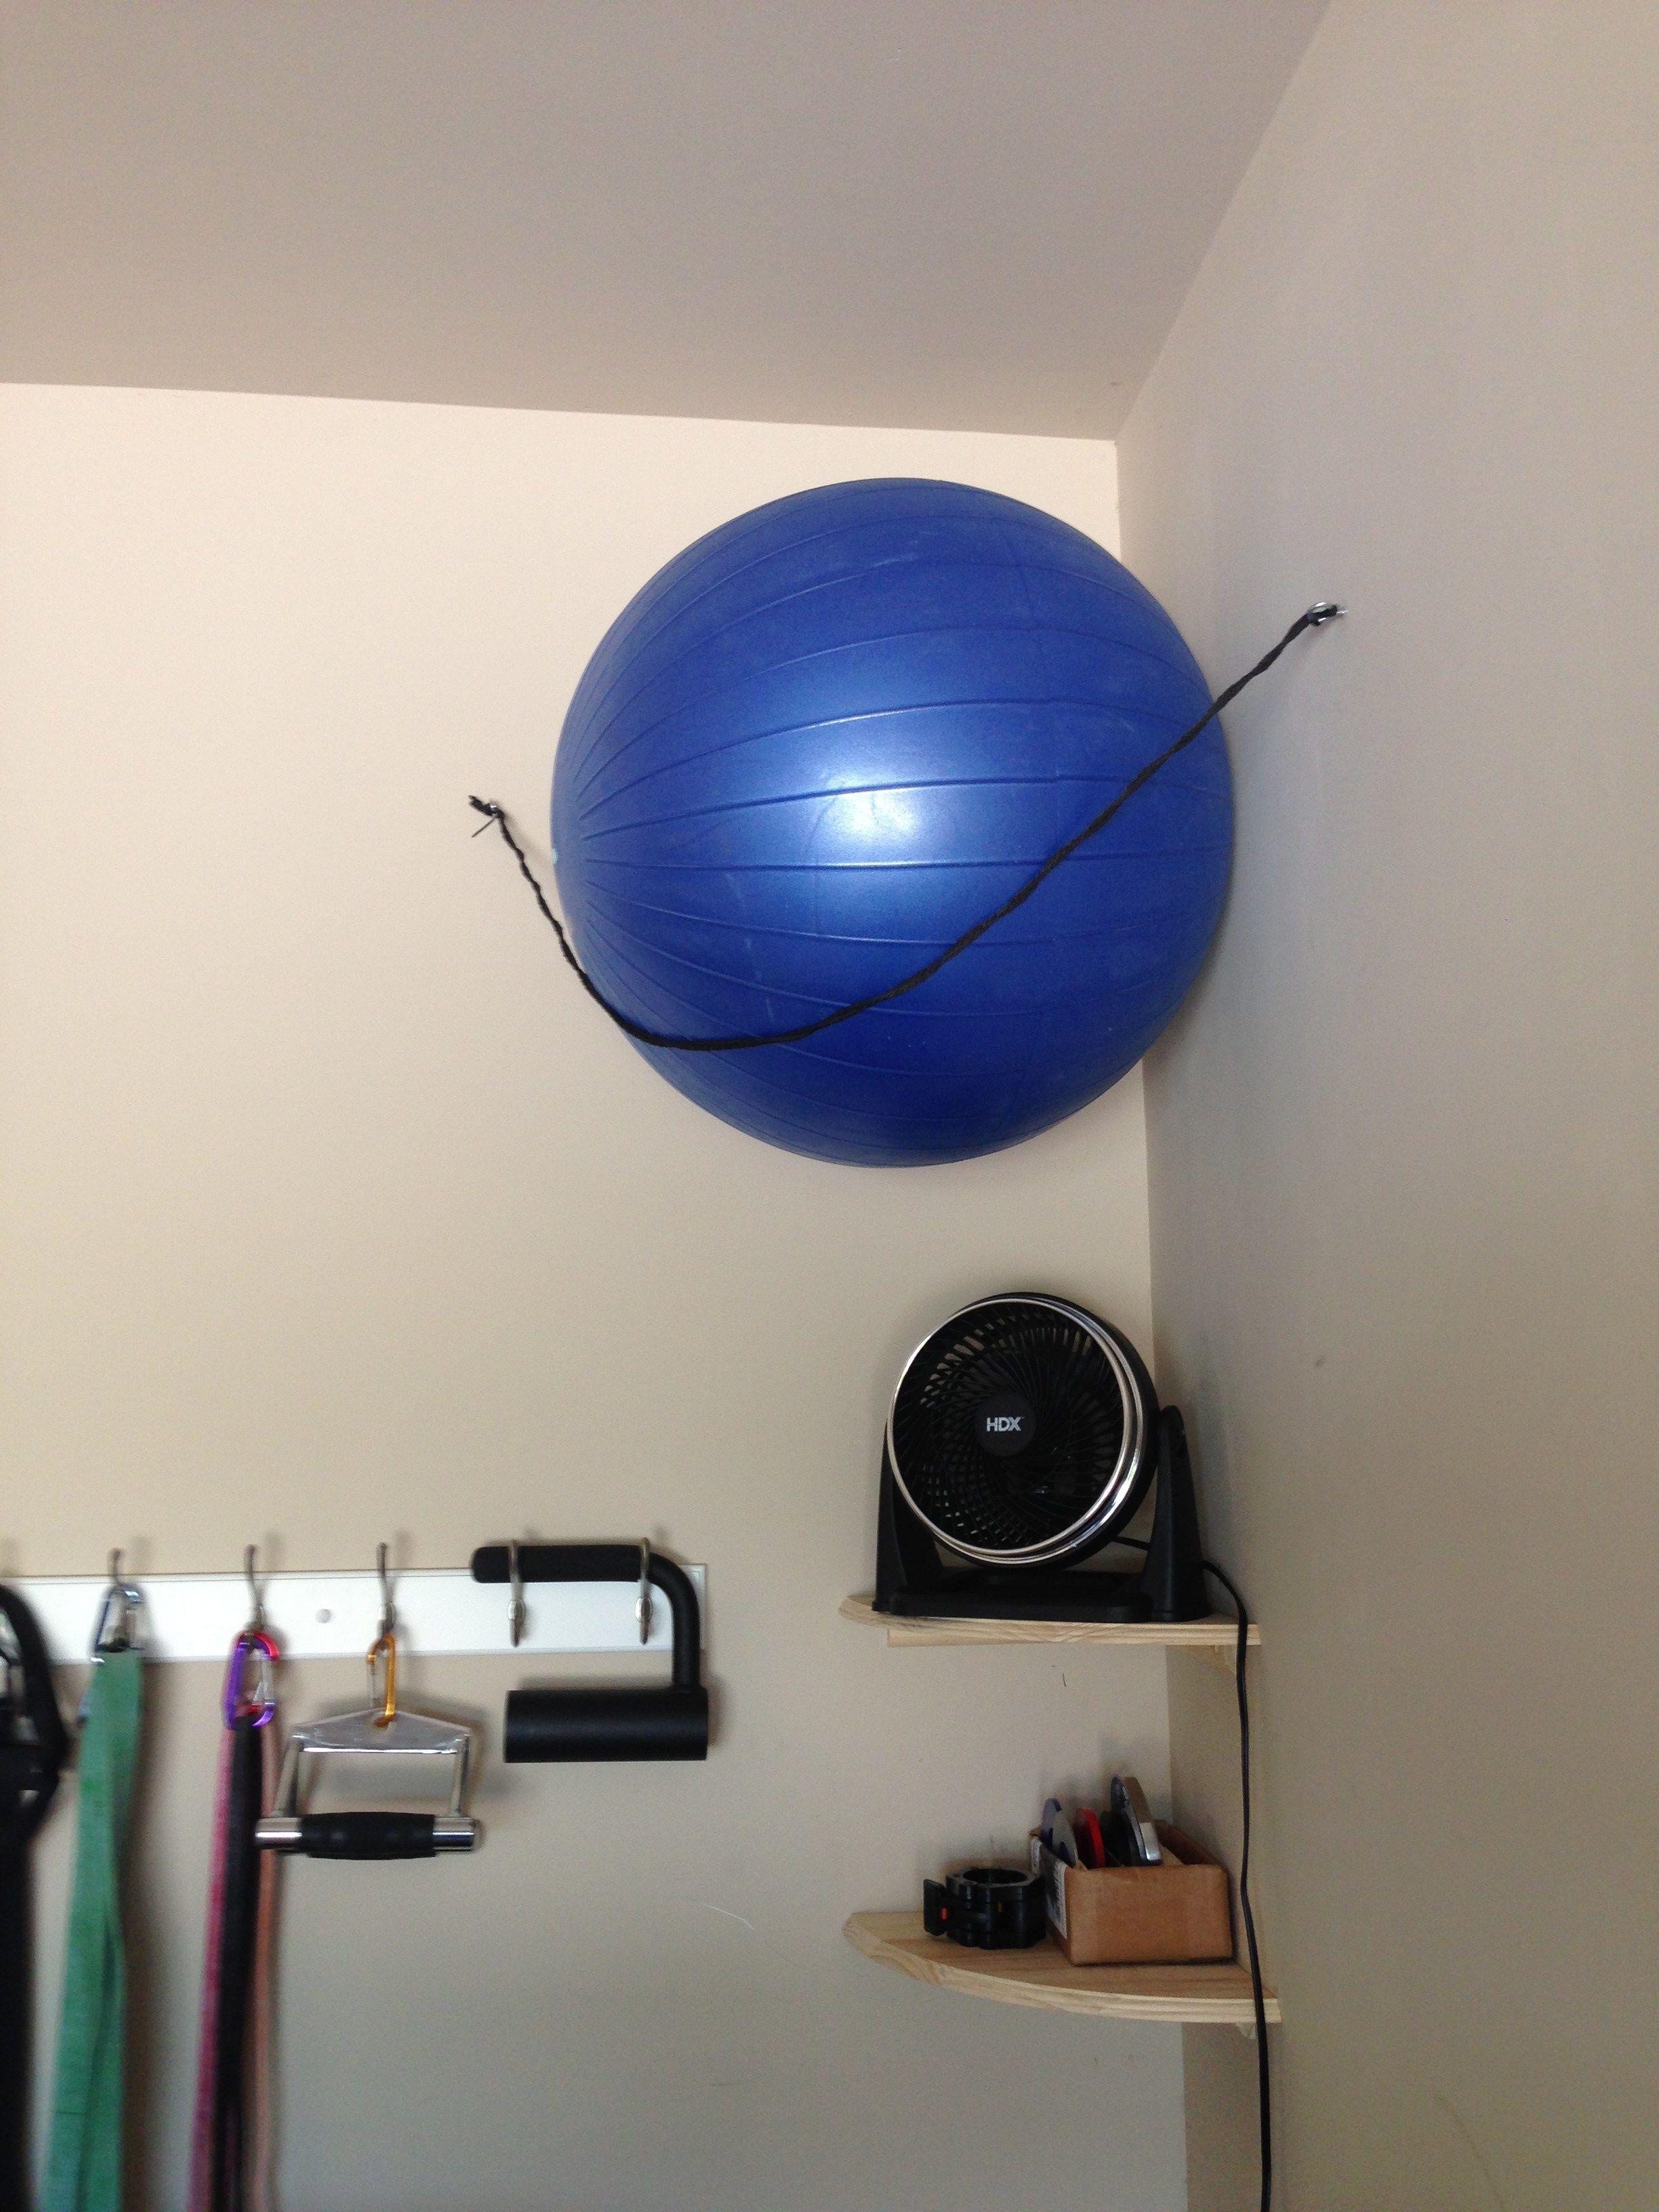 Diy Exercise Ball Storage   Google Search Sports U0026 Outdoors   Sports U0026  Fitness   Home